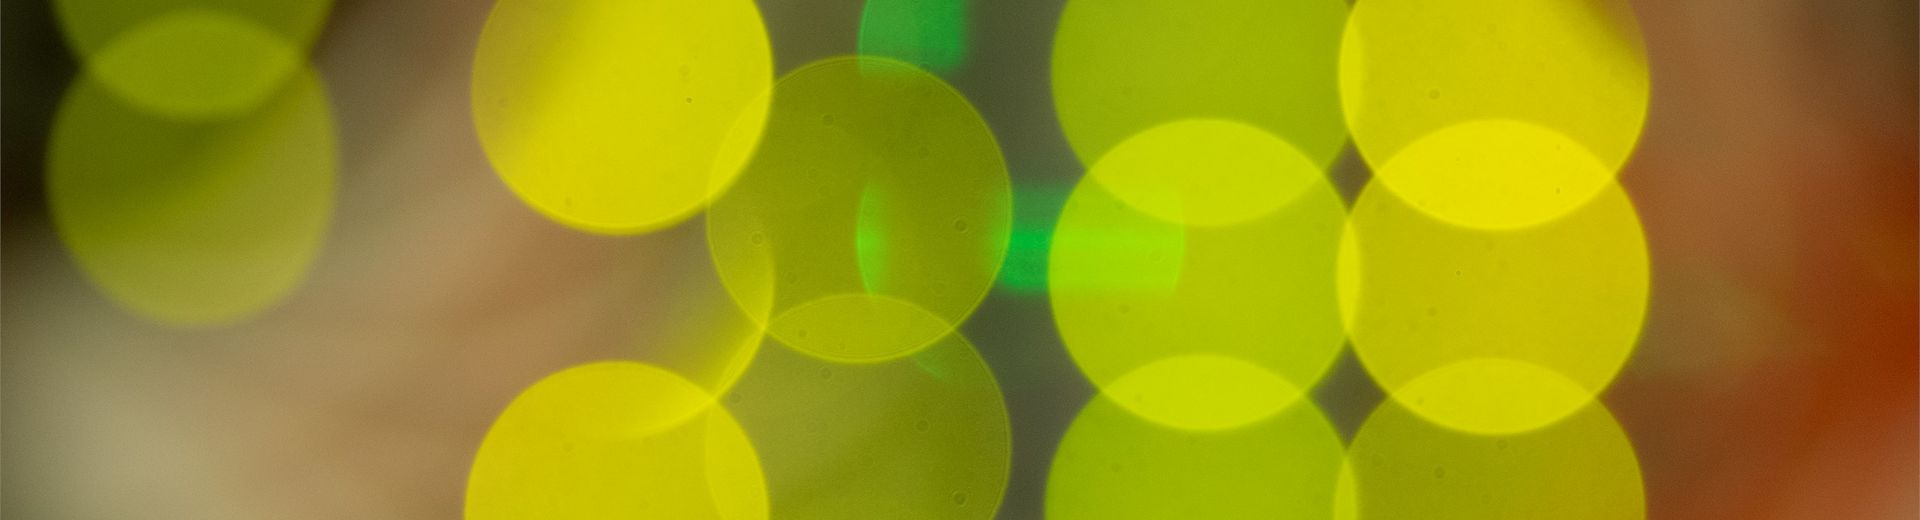 Image is a super close up shot of lights in the back of computer servers resulting in an image of overlapping bright yellow discs of color.